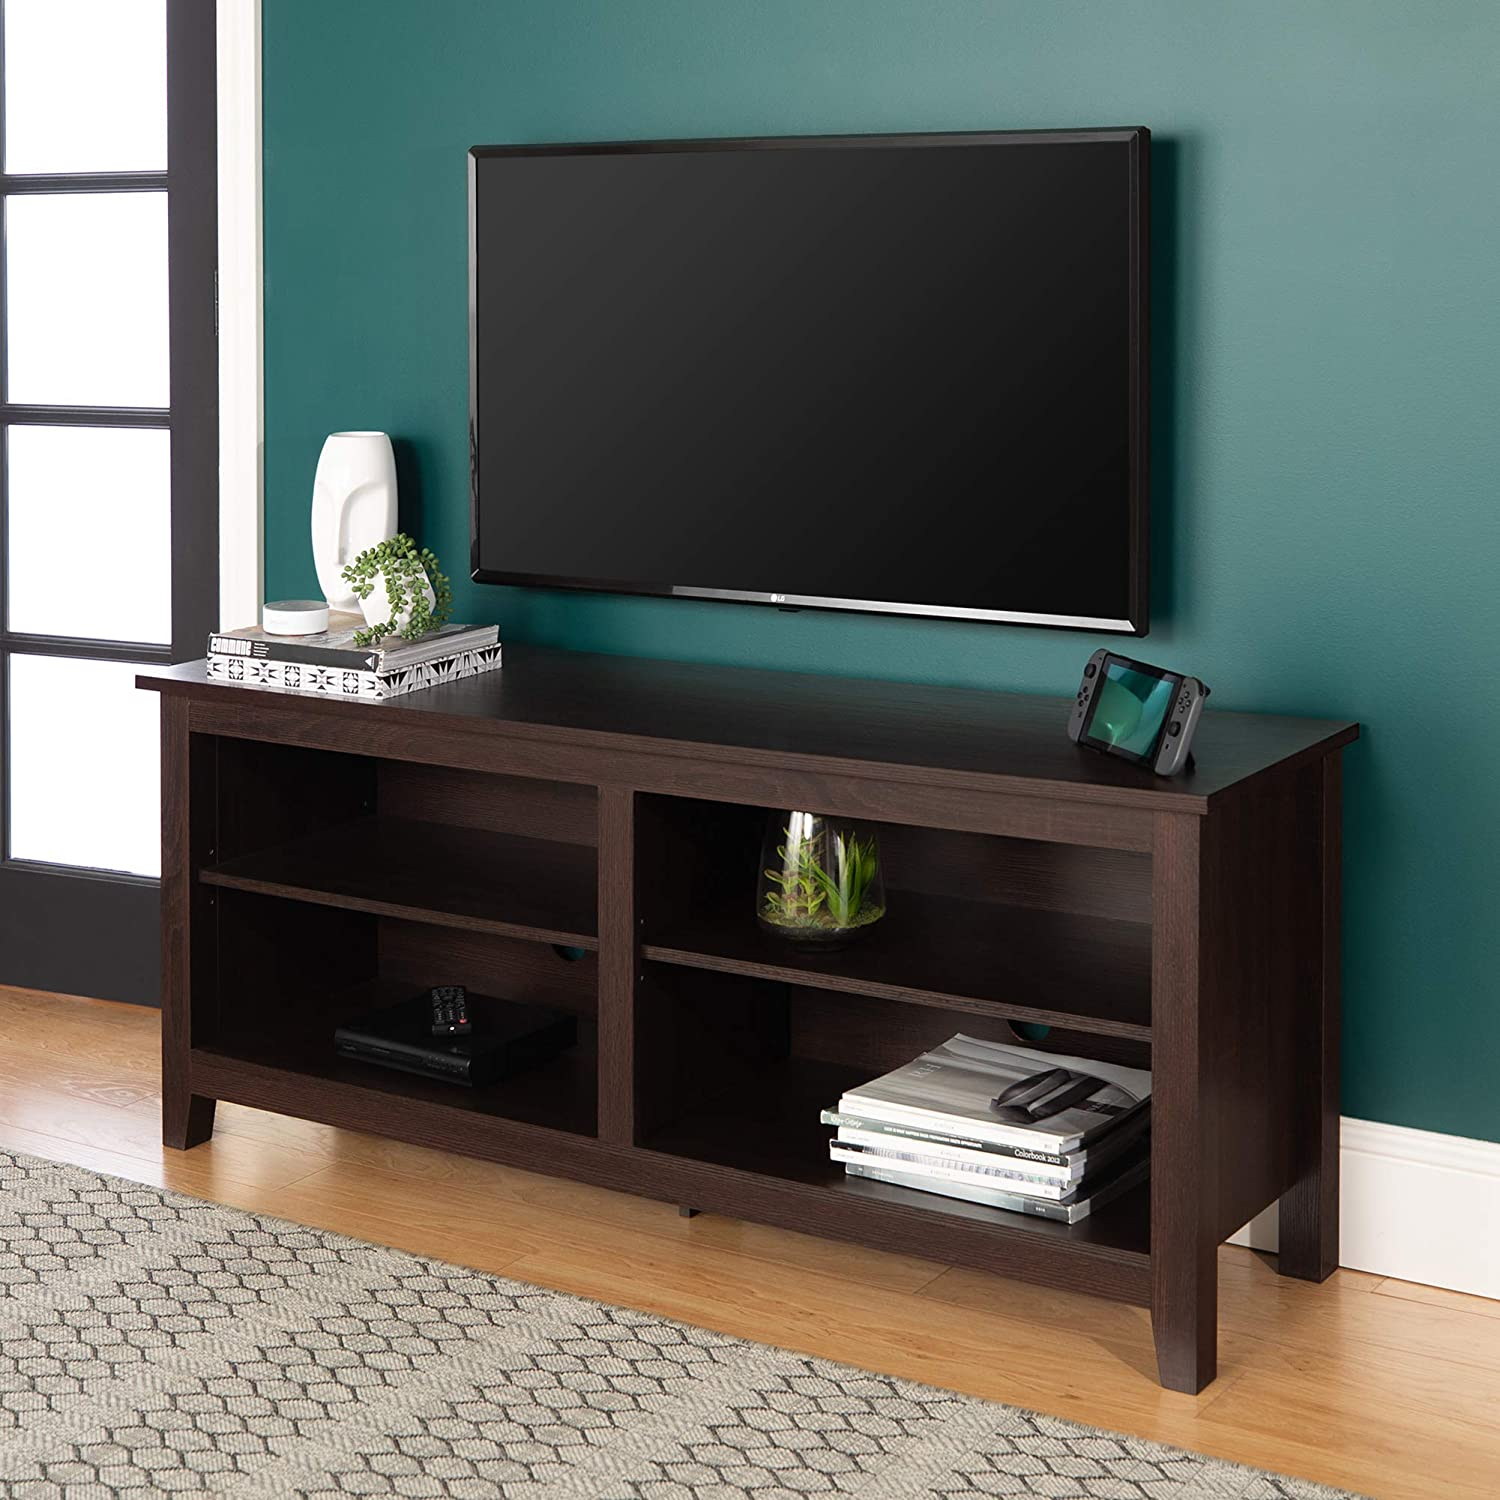 WE Furniture Minimal Farmhouse Wood Universal Stand for TV's up to 64""